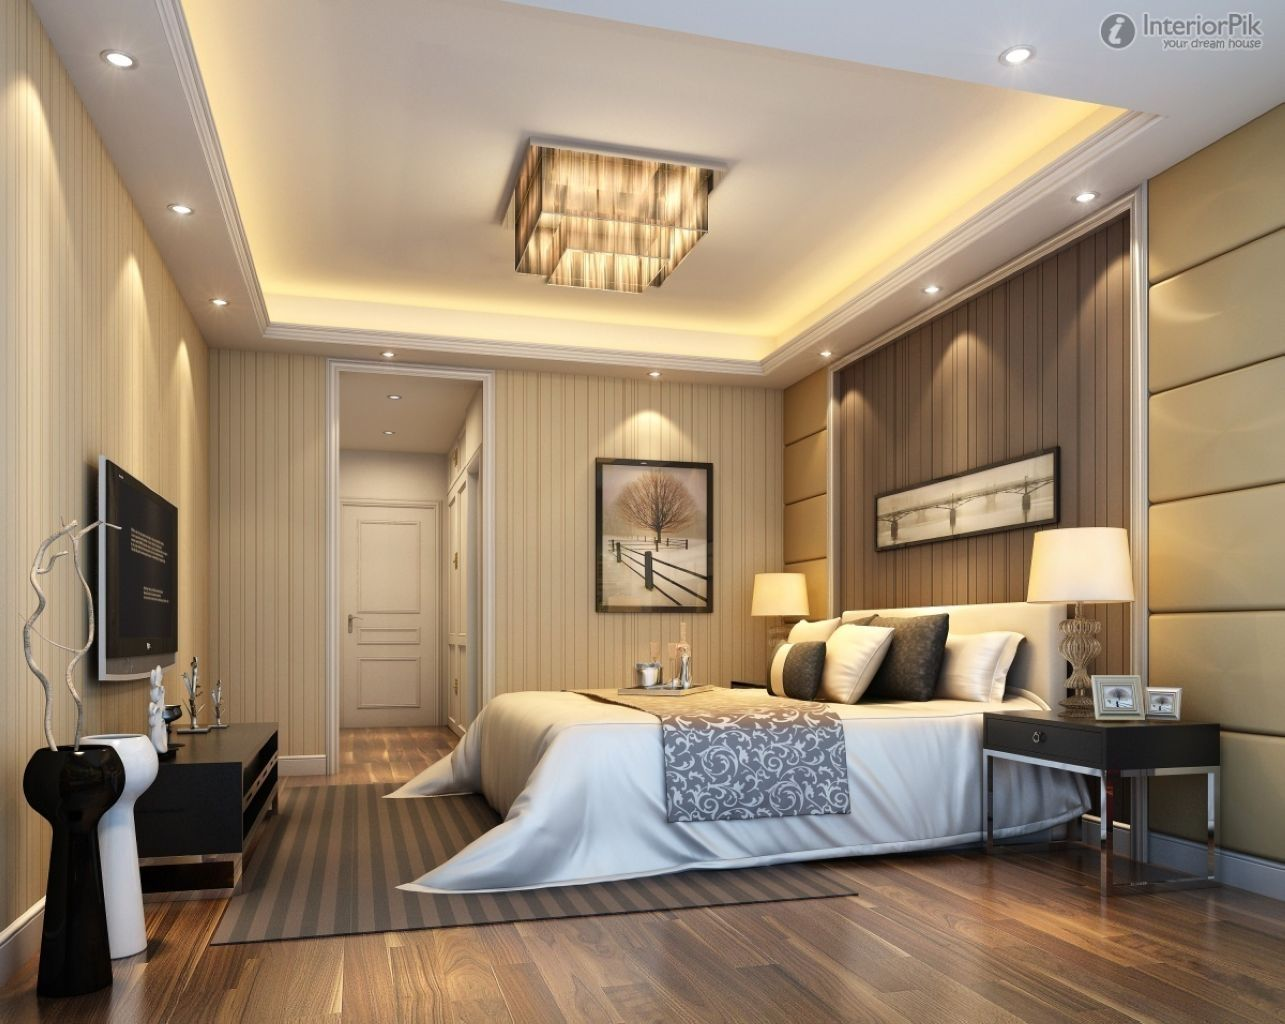 Bedroom Design Ideas On A Budget Gorgeous 49 Amazing Romantic Master Bedroom Design Ideas On A Budget Decorating Inspiration